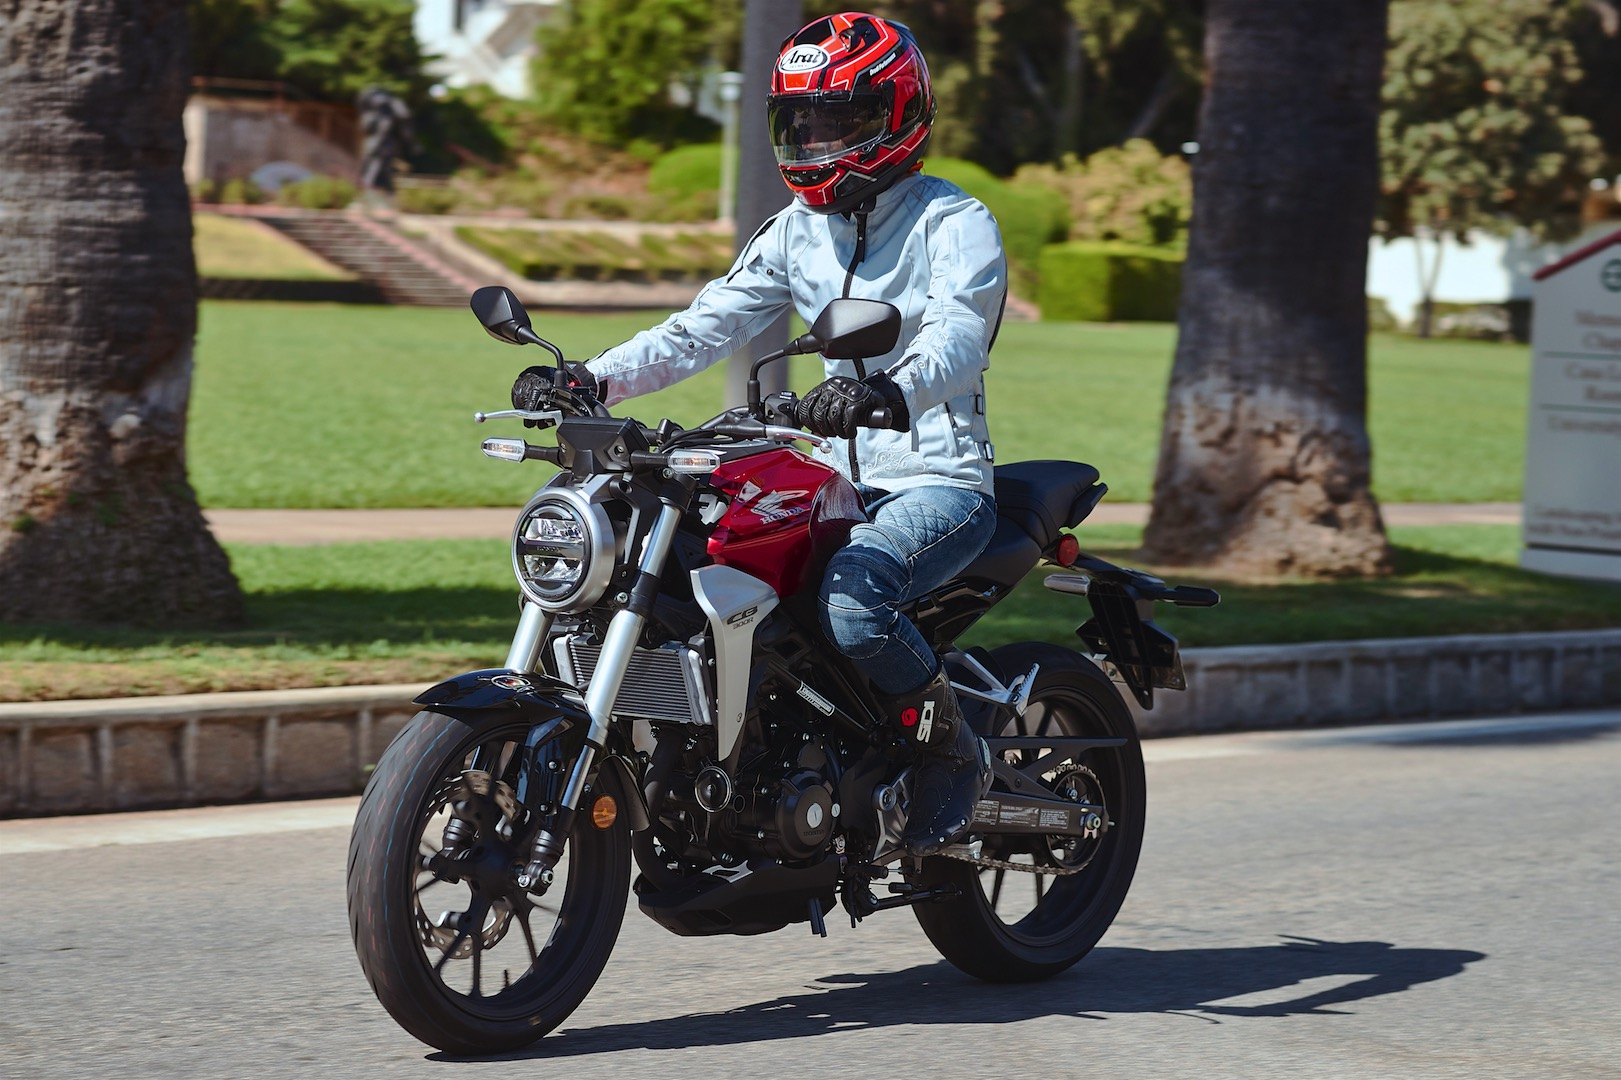 2019 Honda CB300R Review - urban commuter motorcycle